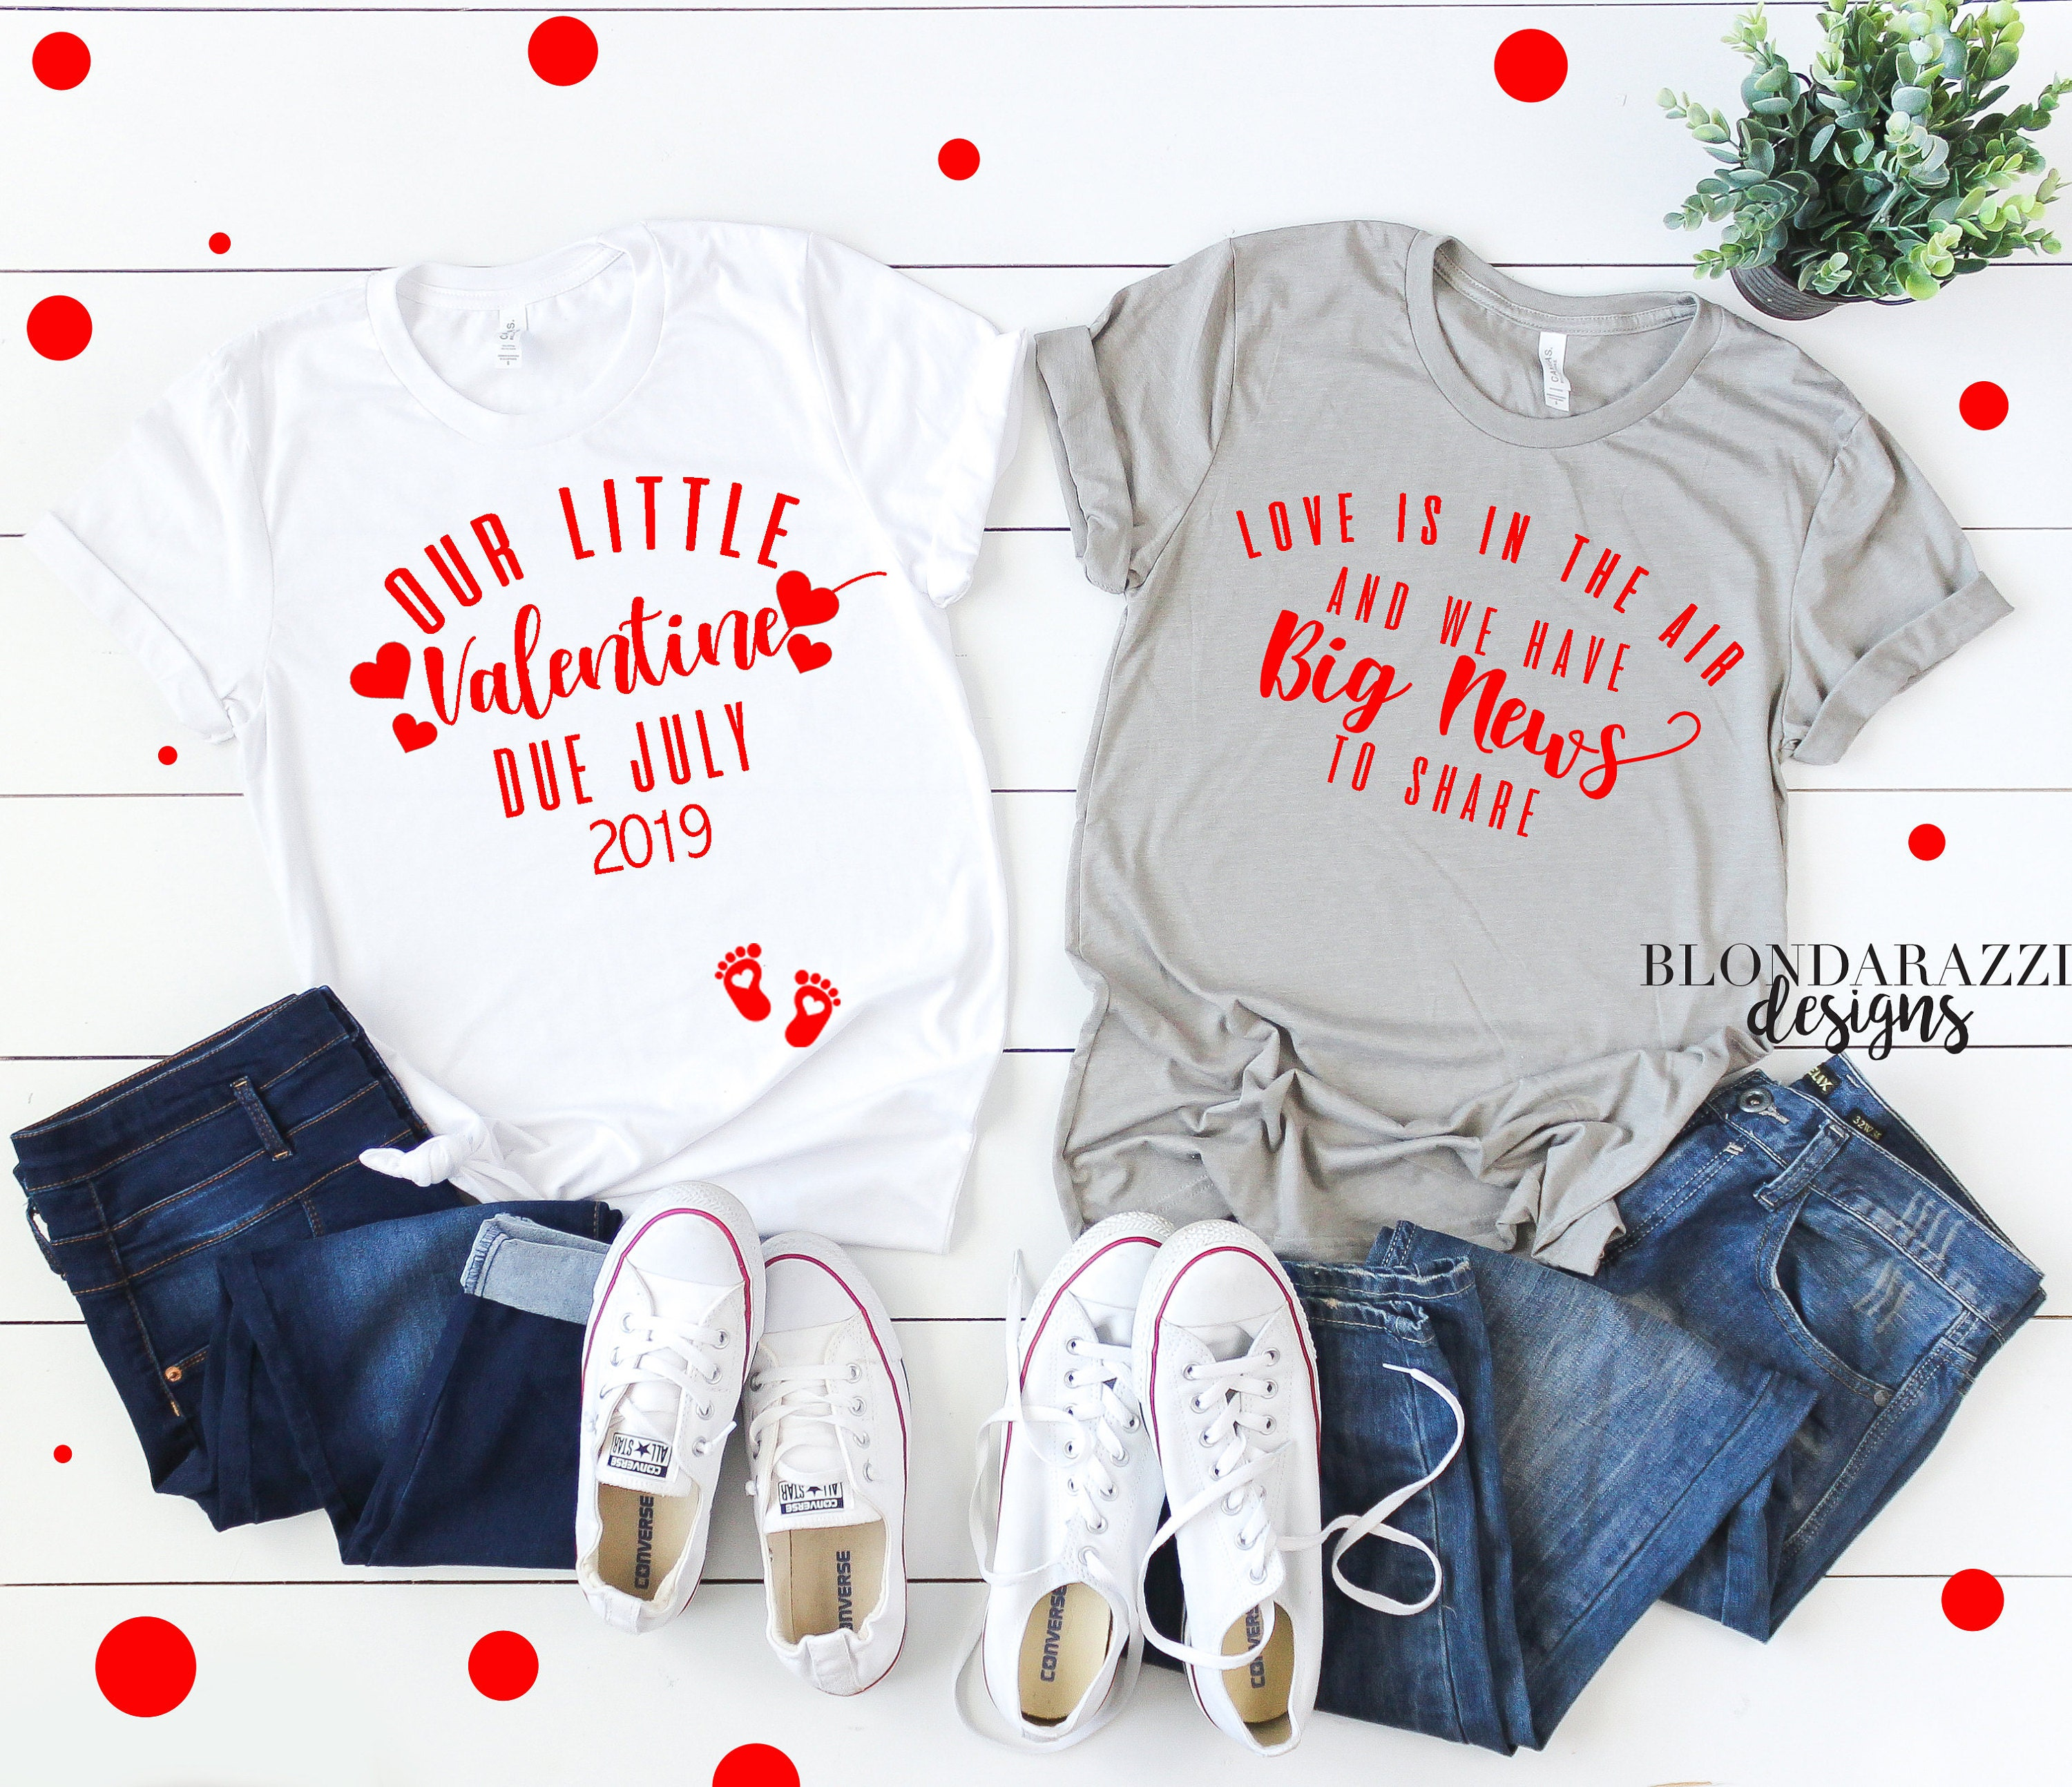 our little valentine shirts love is in the air big news to share valentines day mom and dad shirts